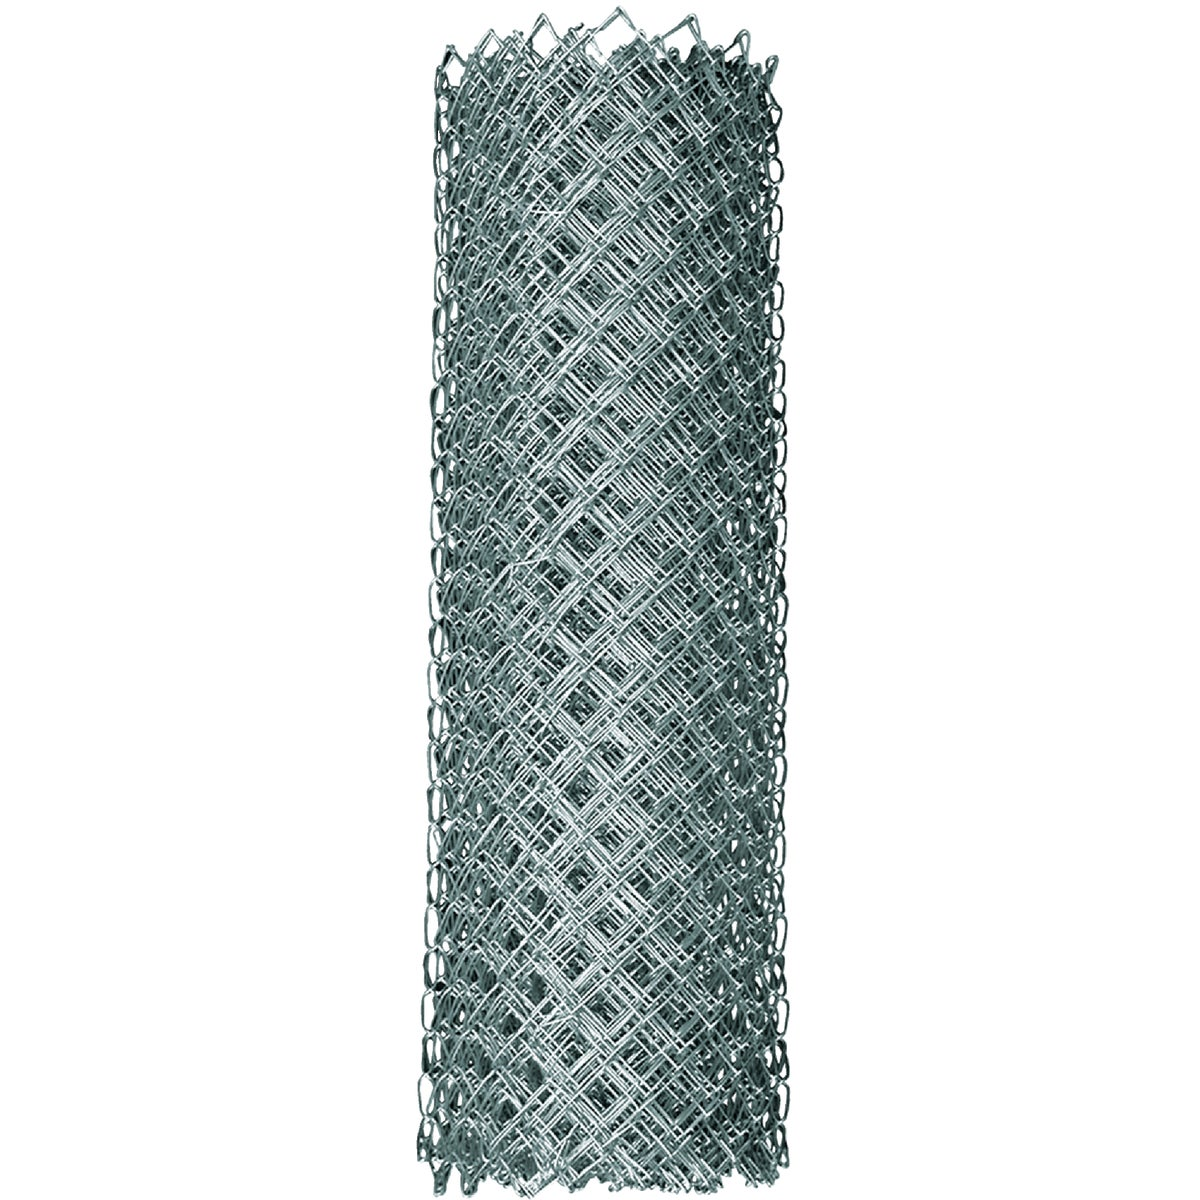 12-1/2GA 6X50'CHAIN LINK - 308756A by Midwest Air Tech